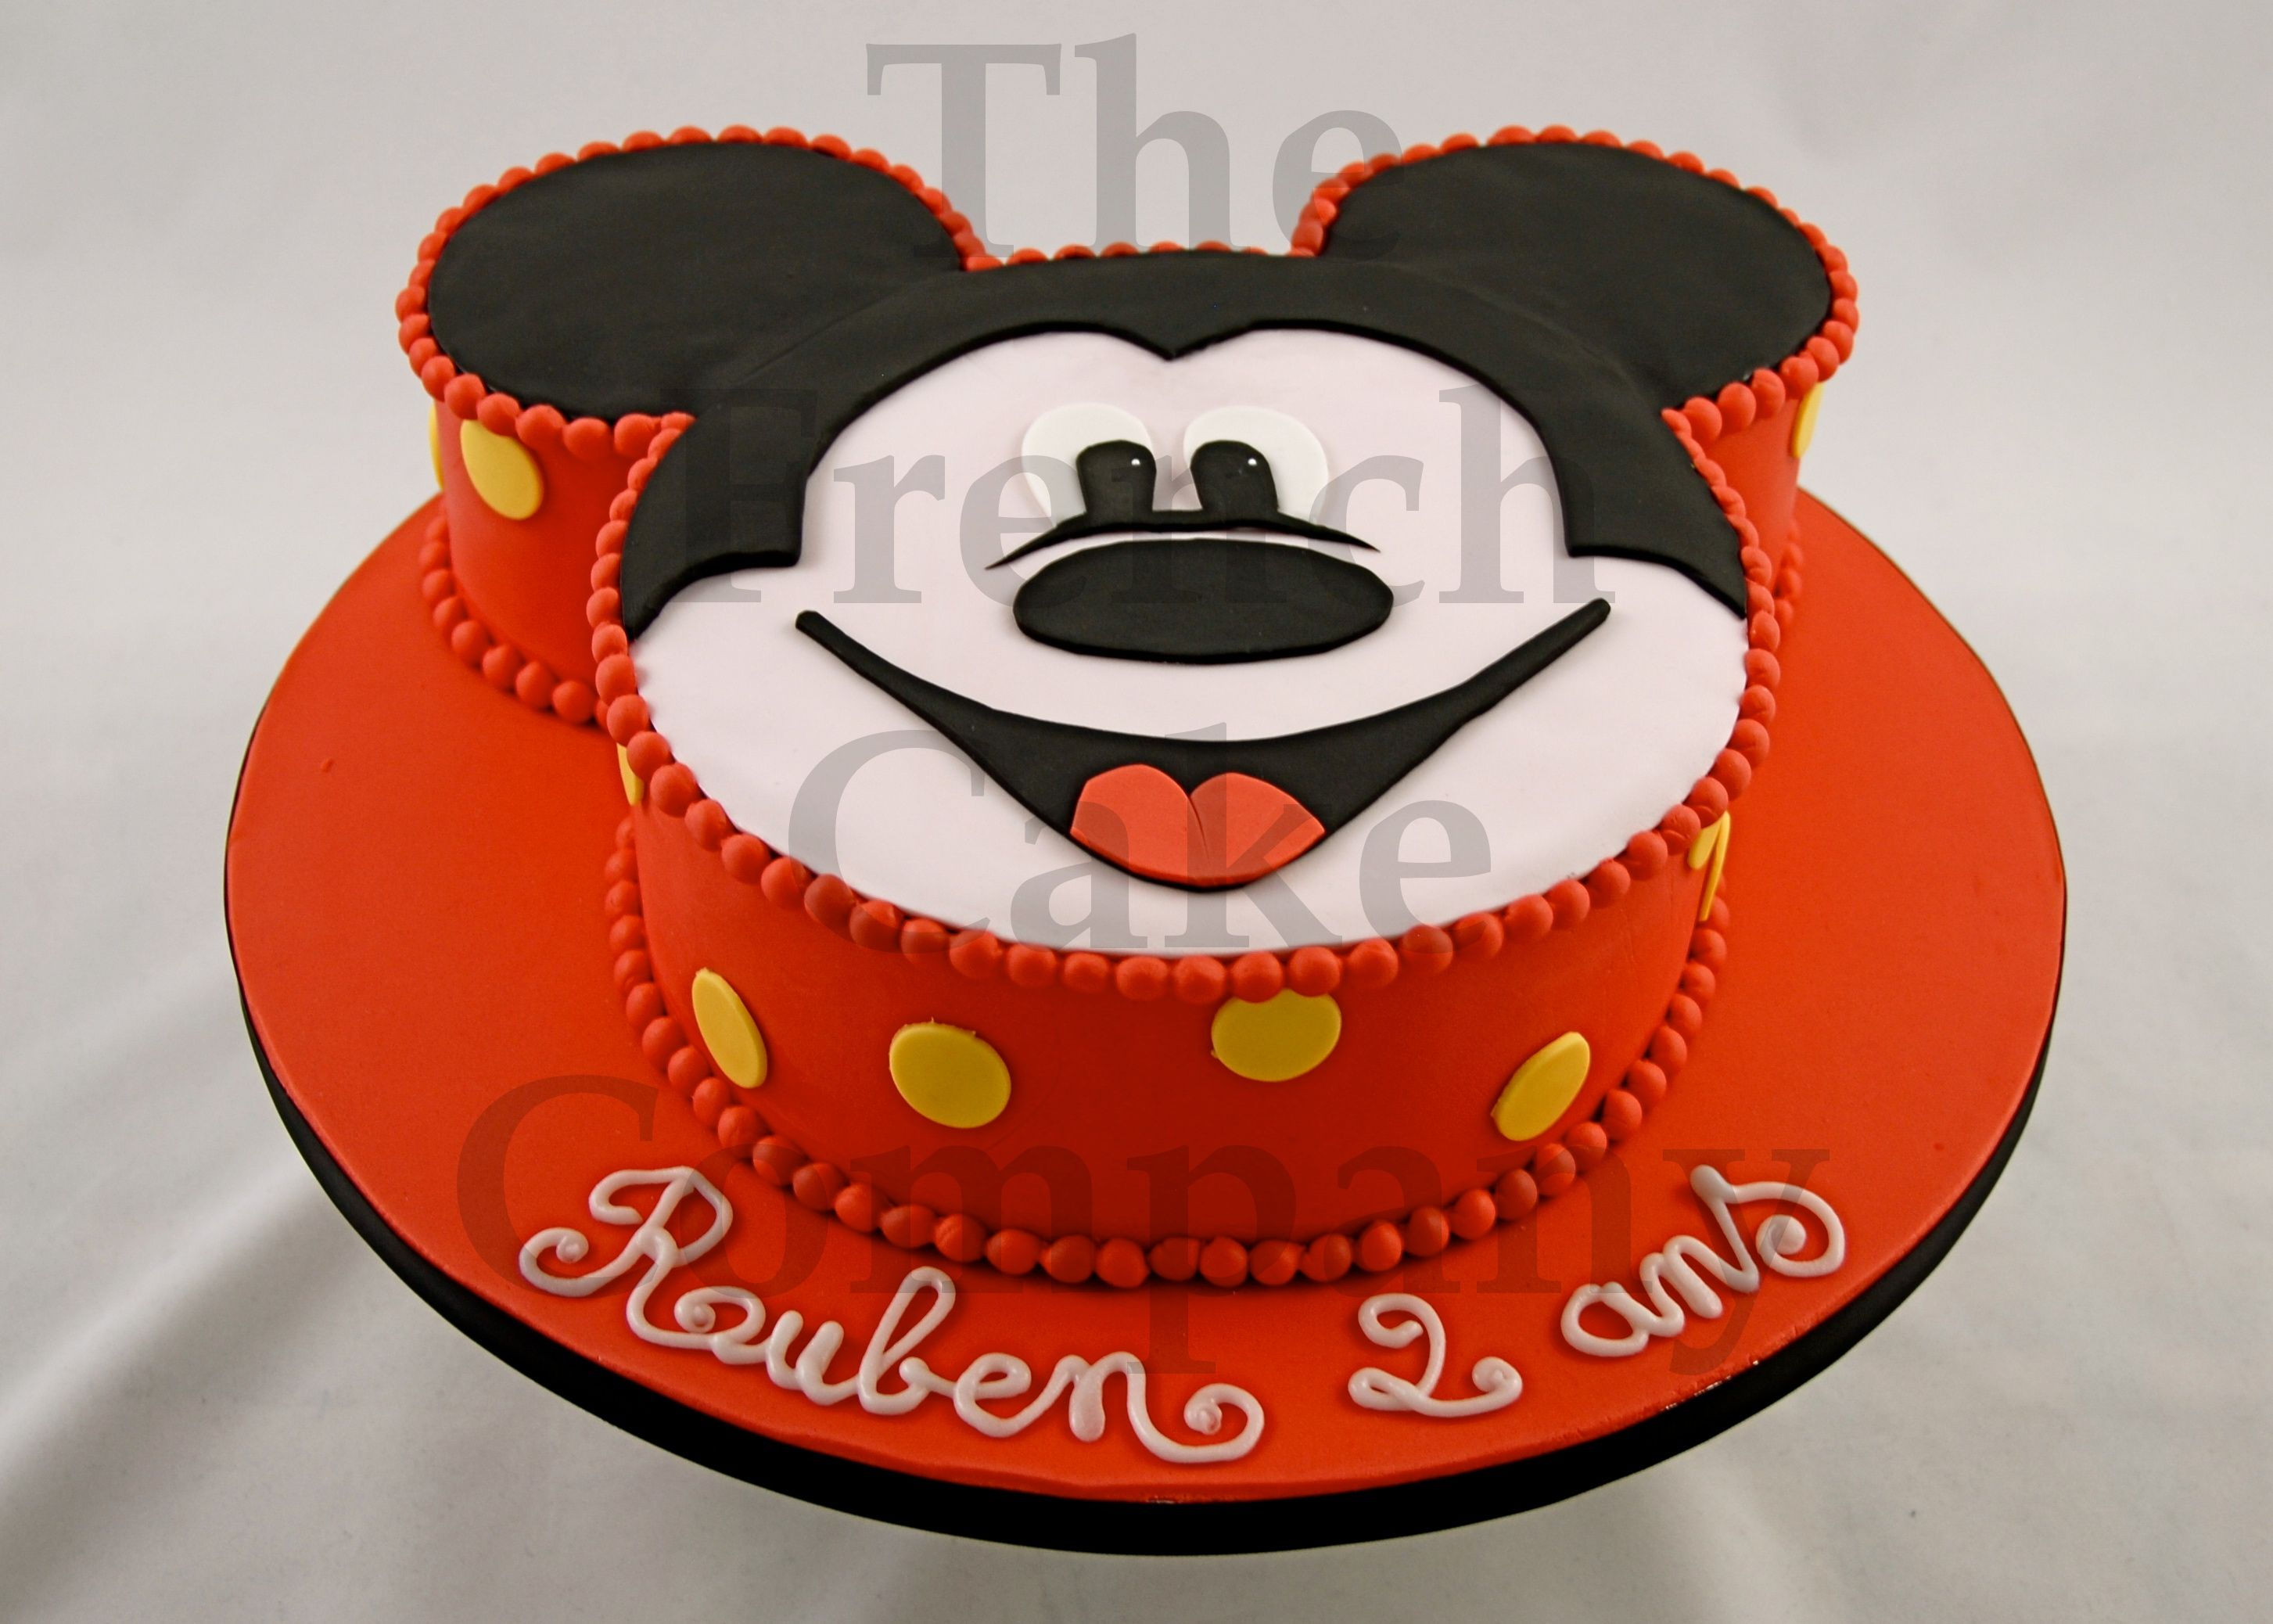 cake for boys mickey gateau d 39 anniversaire pour enfants garcon mickey verjaardagstaart. Black Bedroom Furniture Sets. Home Design Ideas